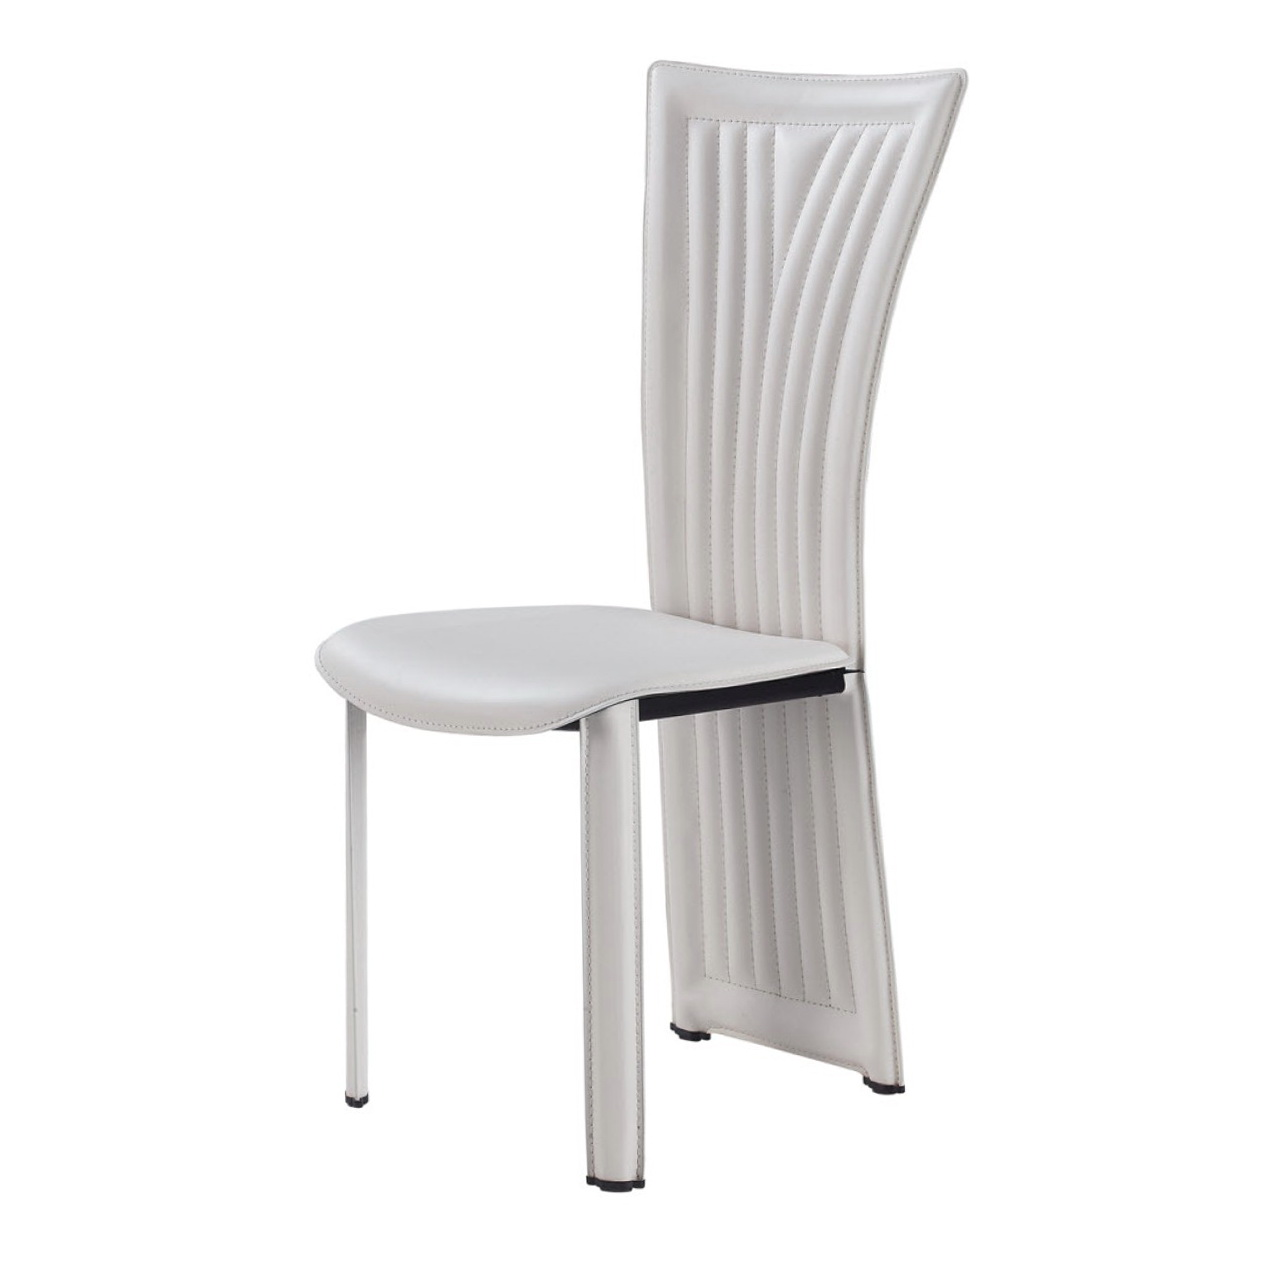 White Upholstered Dining Chairs